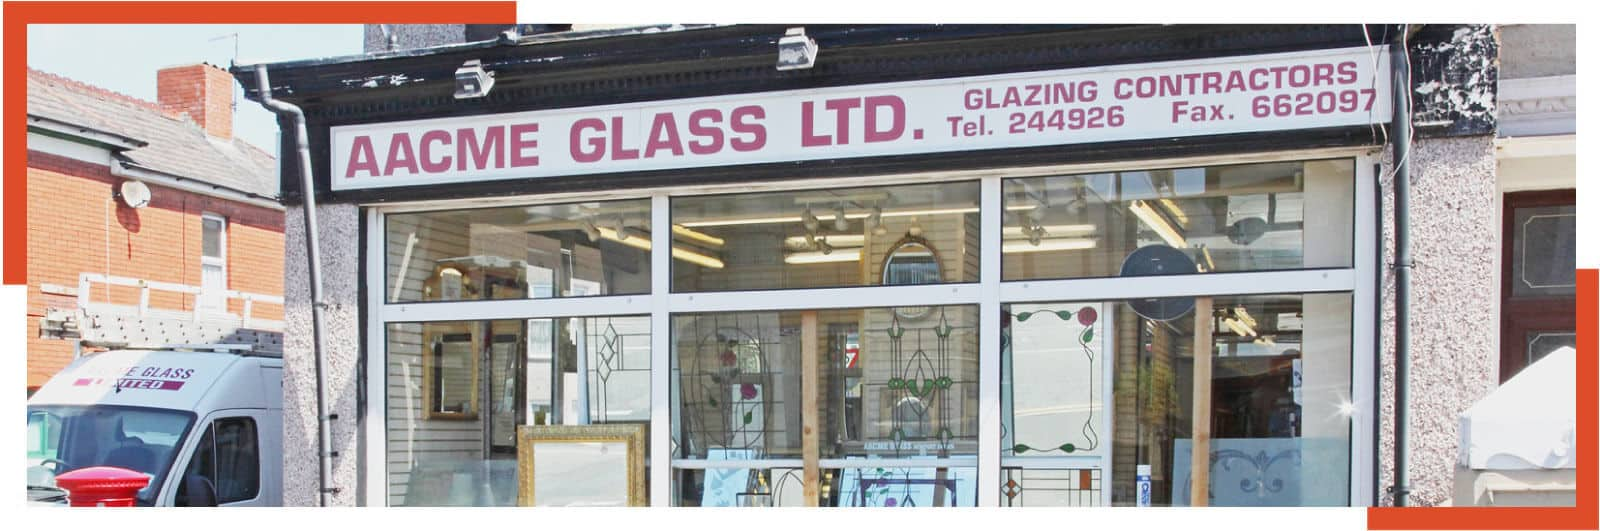 Contact Aacme glass Newport